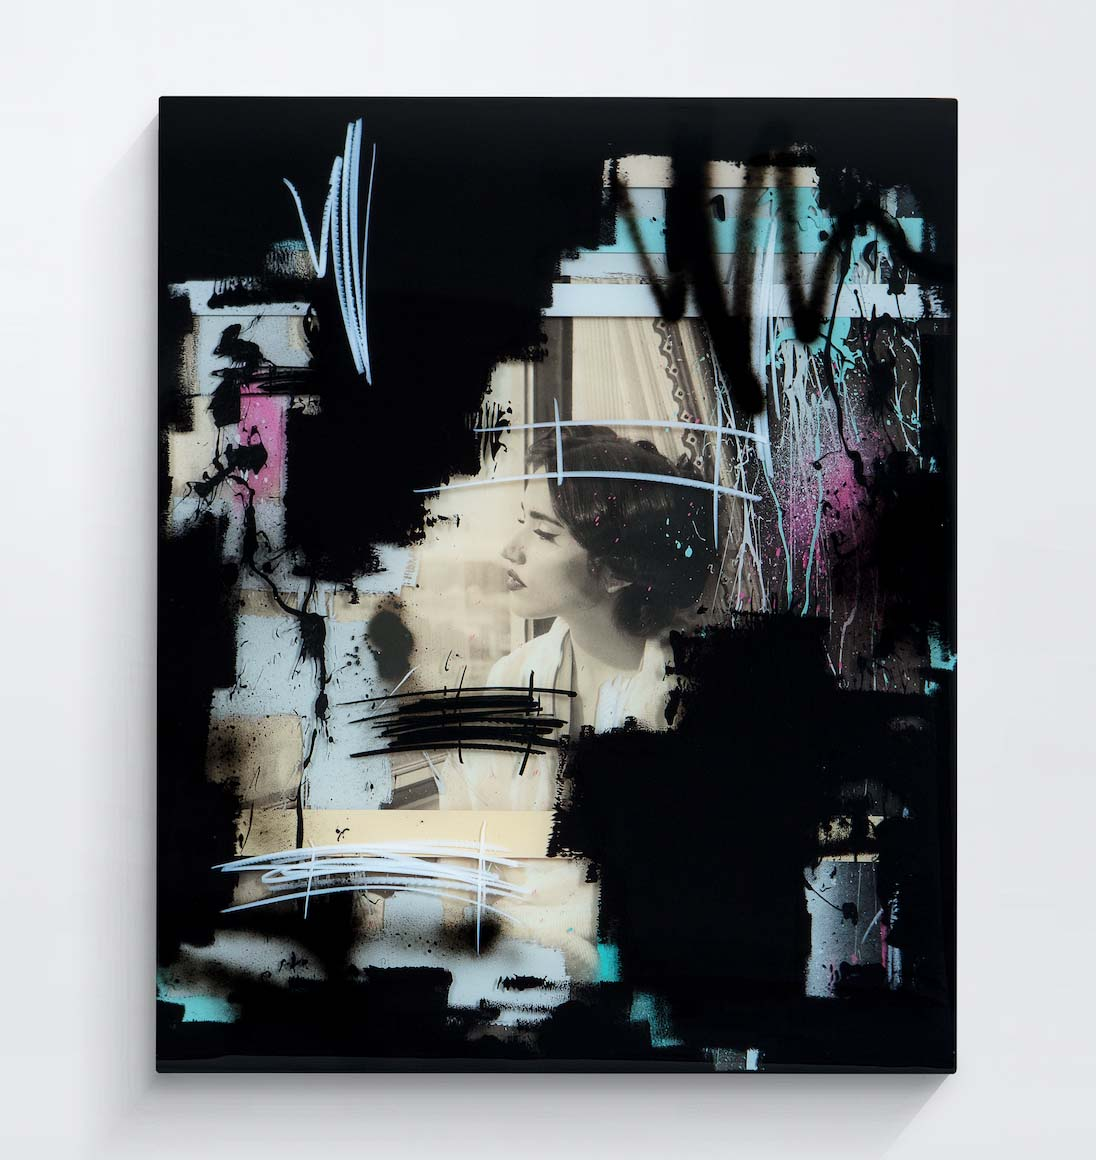 Jeremy-Brown-Dday-dream-_-25_-x-30_-_-acrylic-aerosol-and-oil-stick-between-layers-of-epoxy-resin-on-mounted-photograph-1